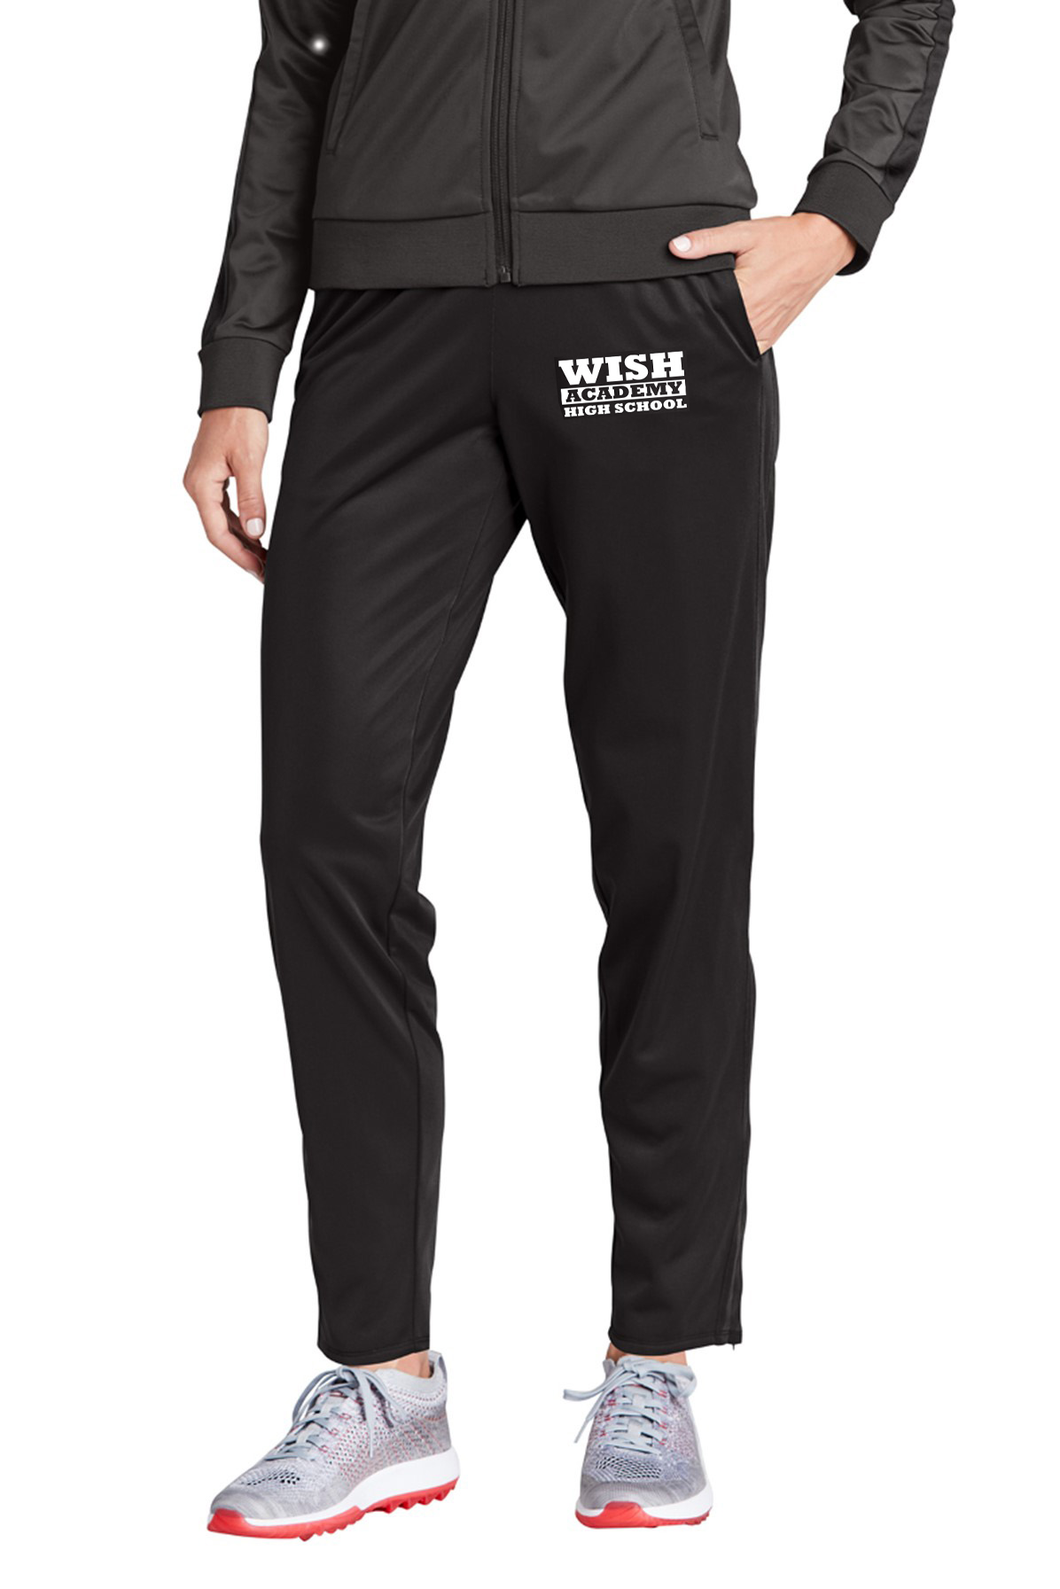 WISH Academy Women's Tapered Leg Athletic Active Pants